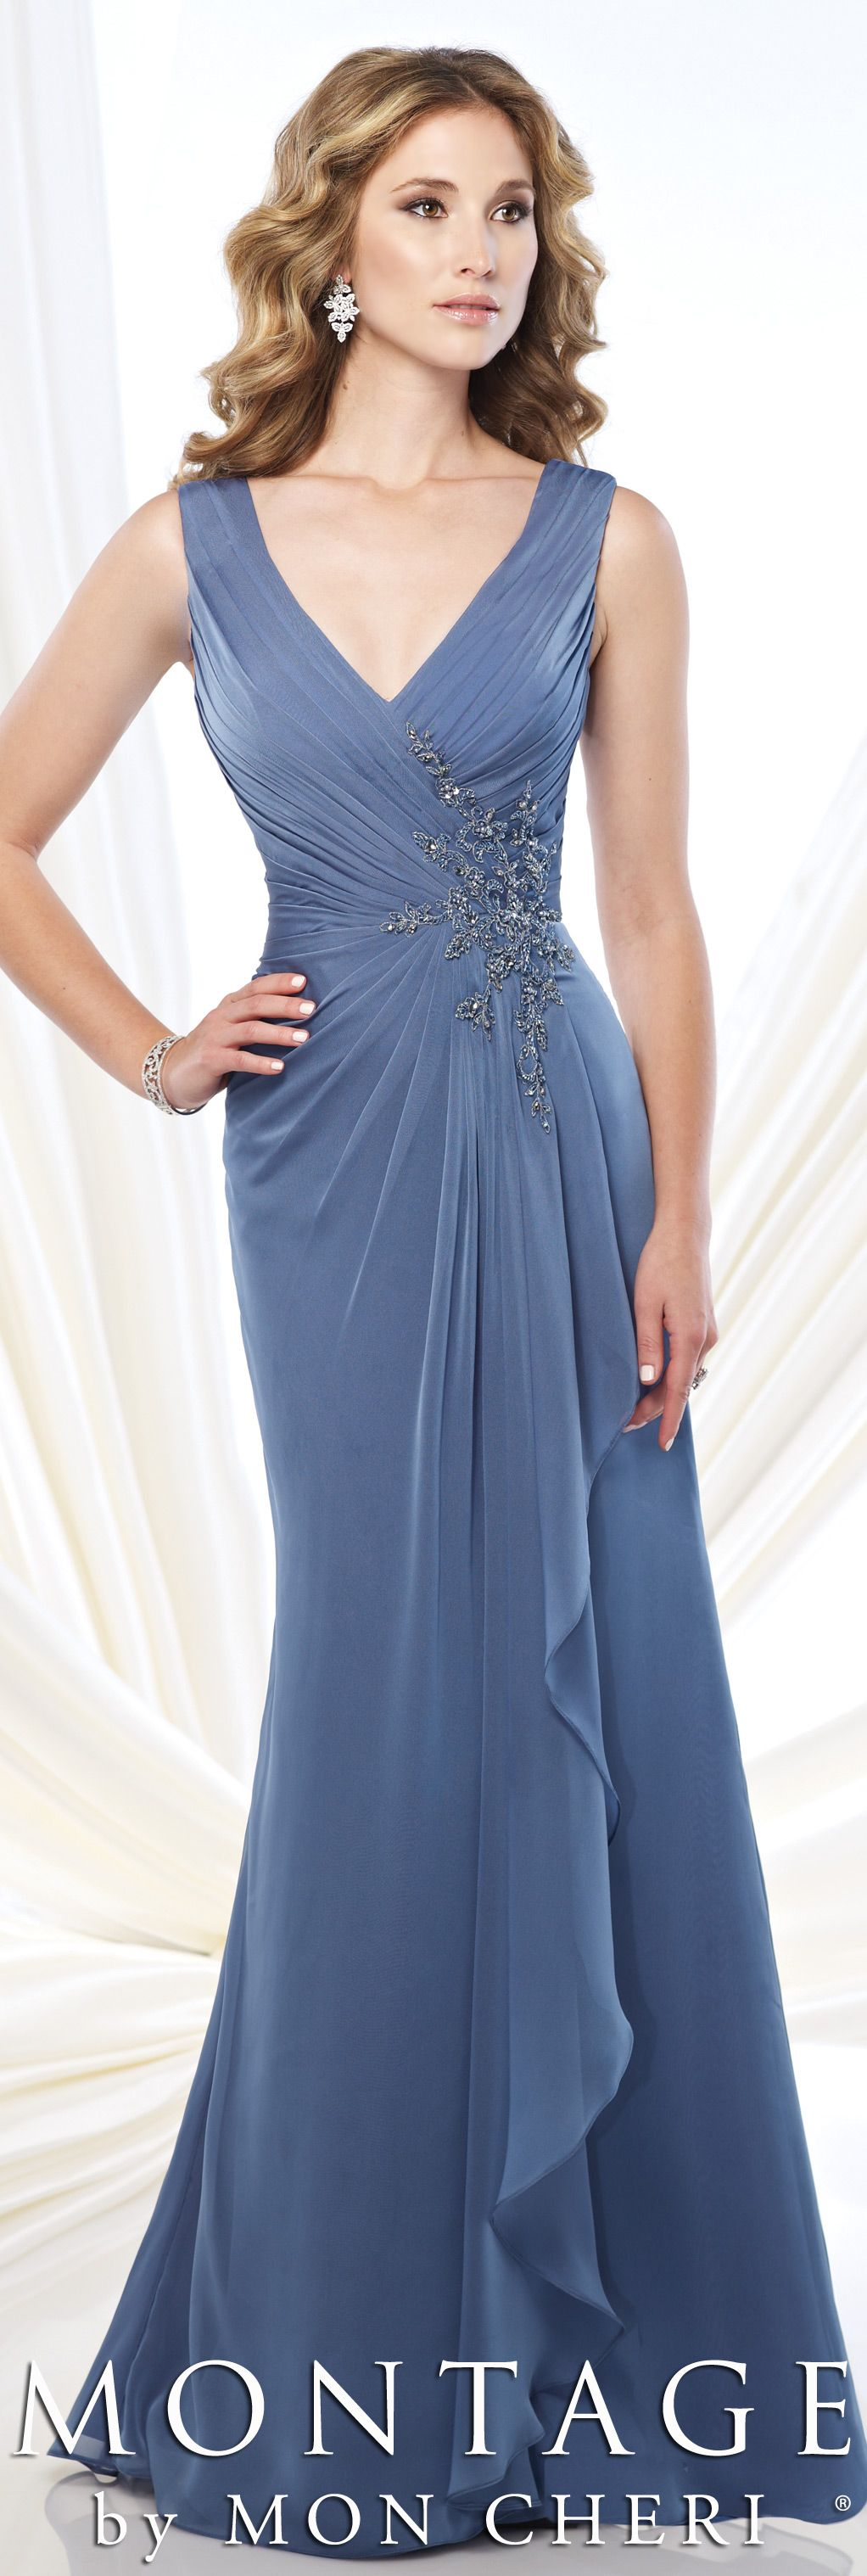 Sophisticated Mother of the Bride Dresses 2018 by Mon Cheri | Fall ...